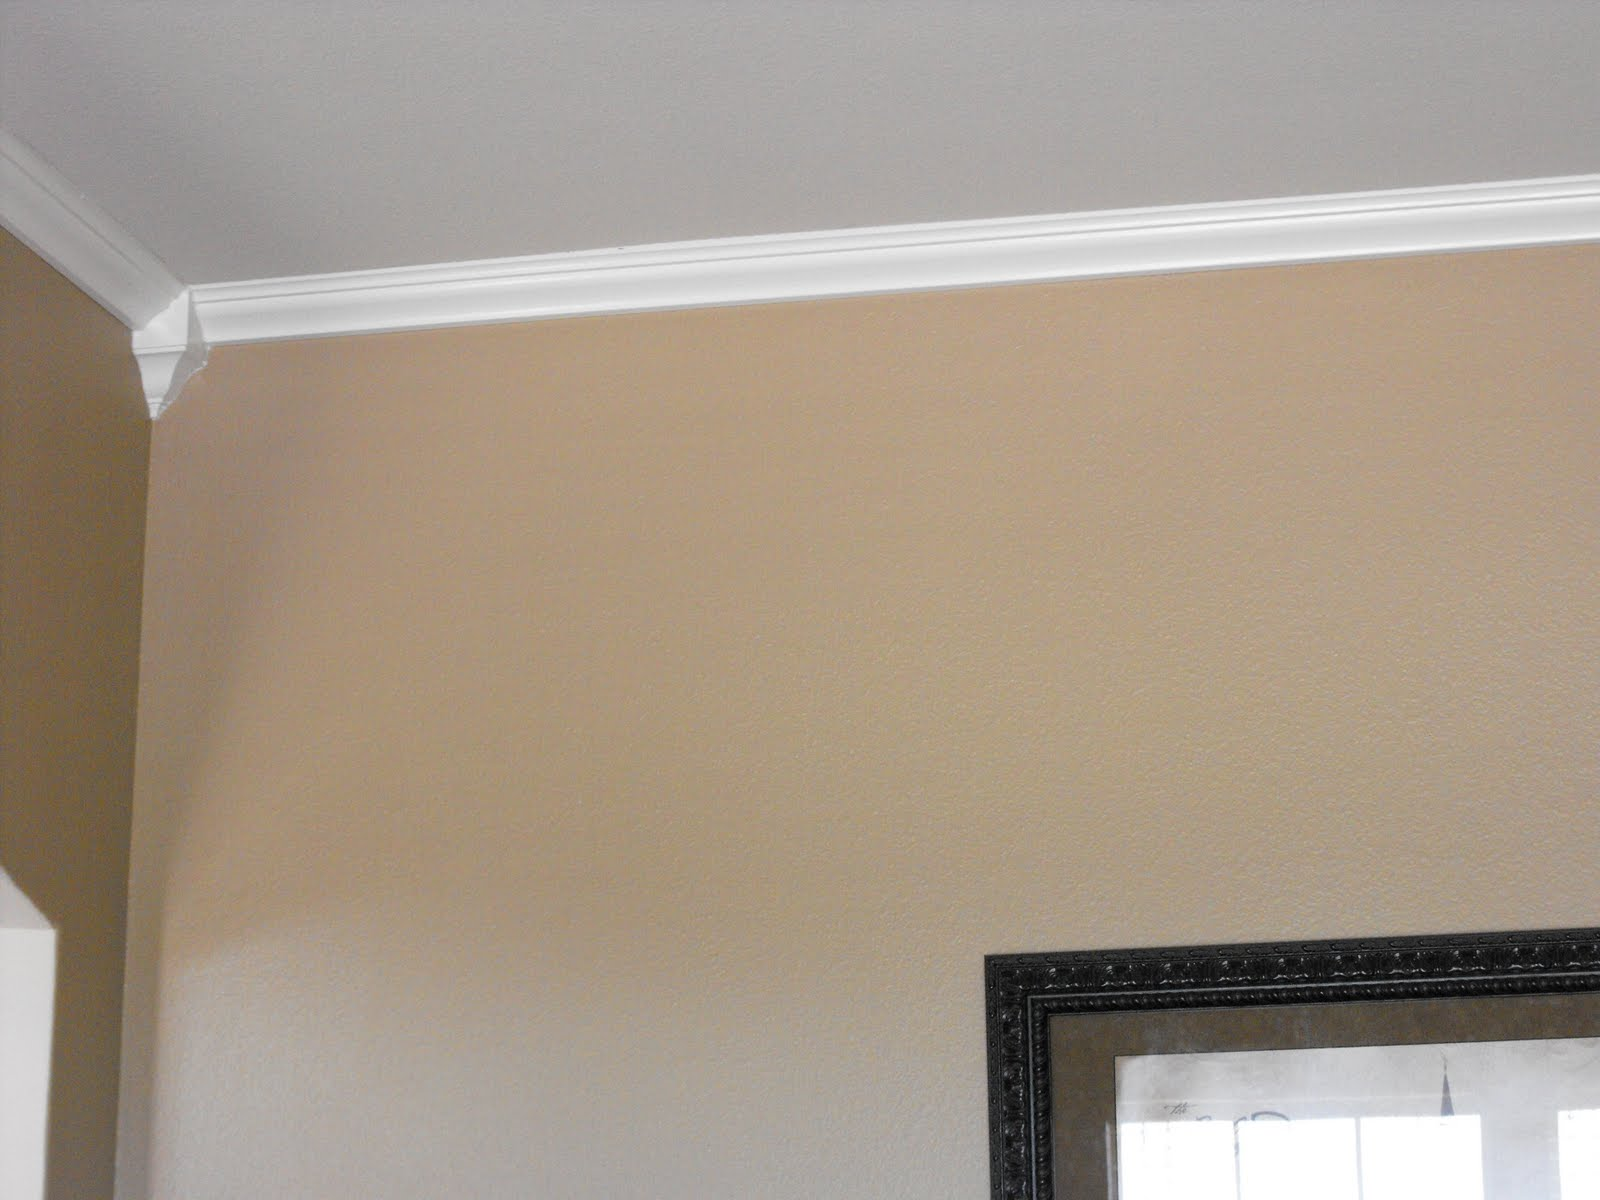 Alternative to crown molding - Monday August 9 2010